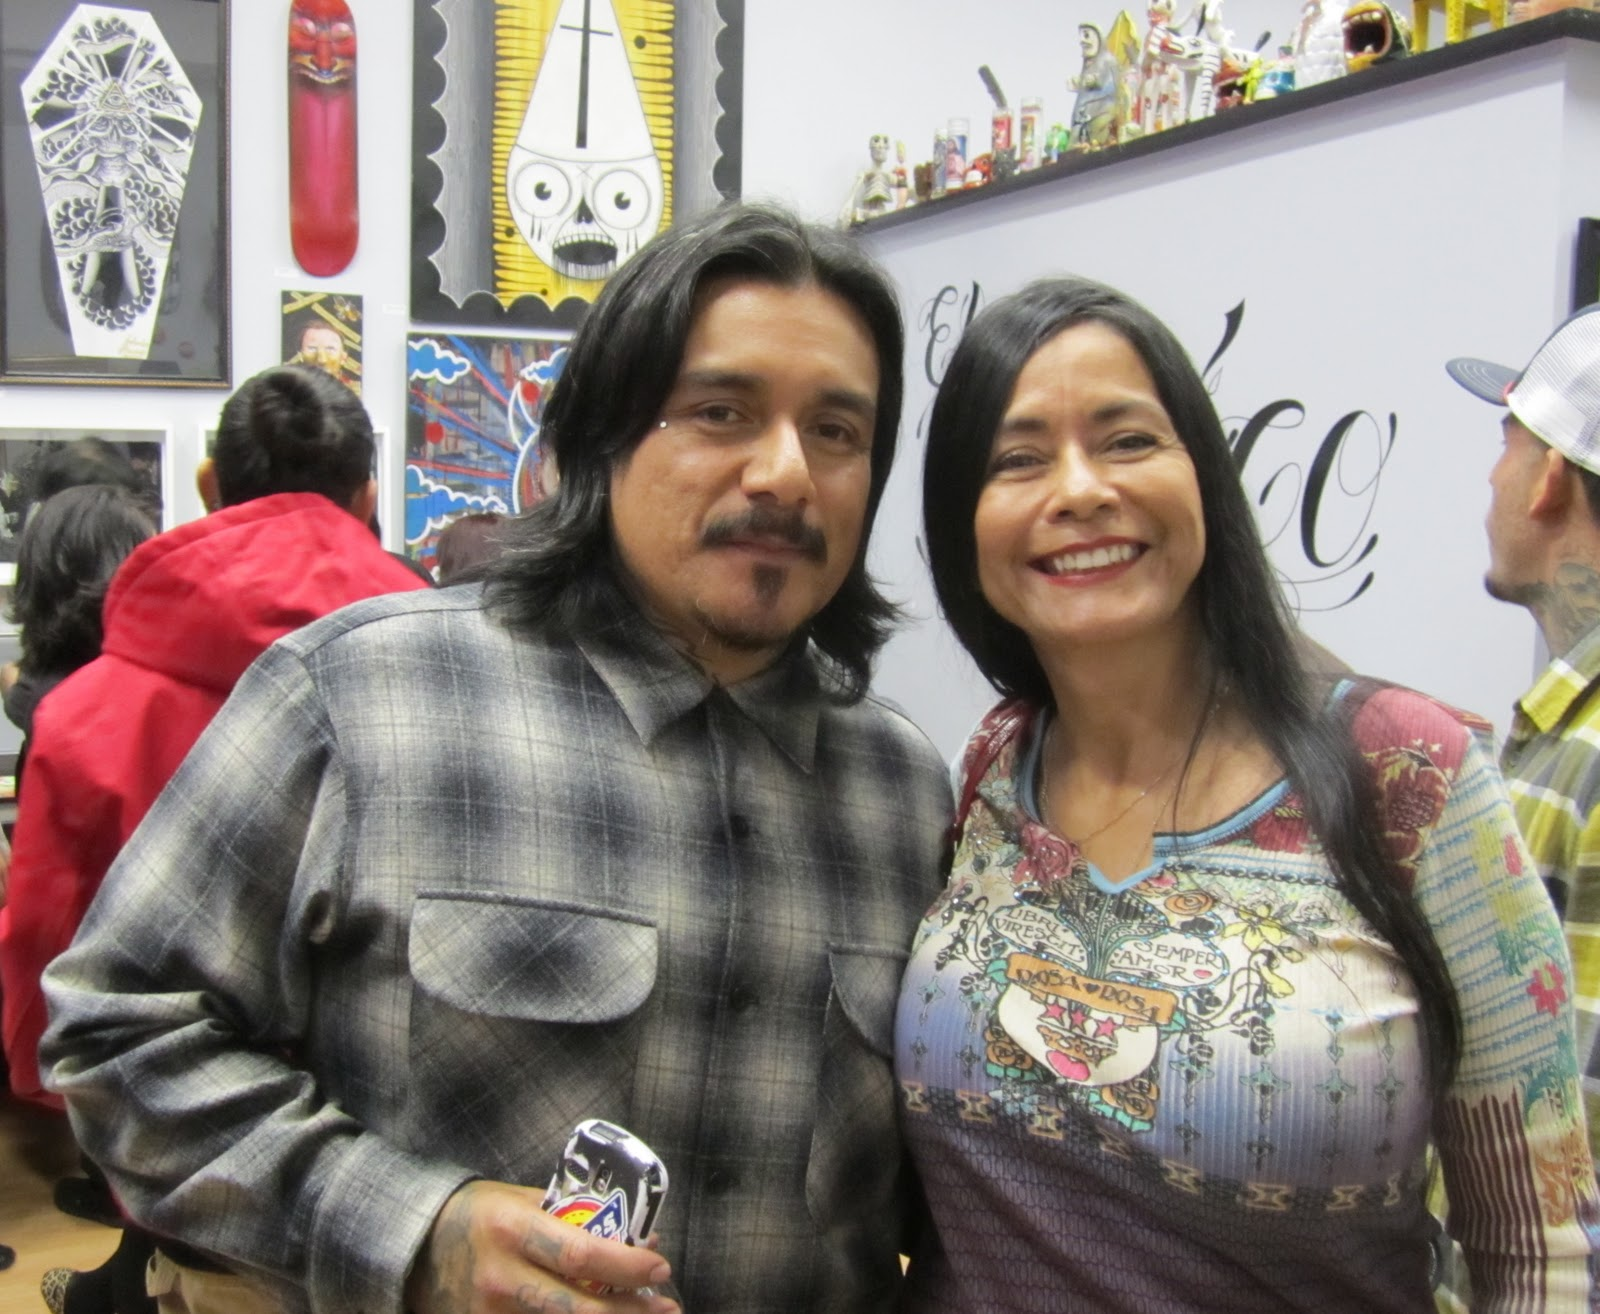 El clasico tattoo - Congratulations And Thank You El Clasico Tattoo For A Successful Opening Reception Of Diverse And Gifted Young Artists Salvador Preciado Your Genuine